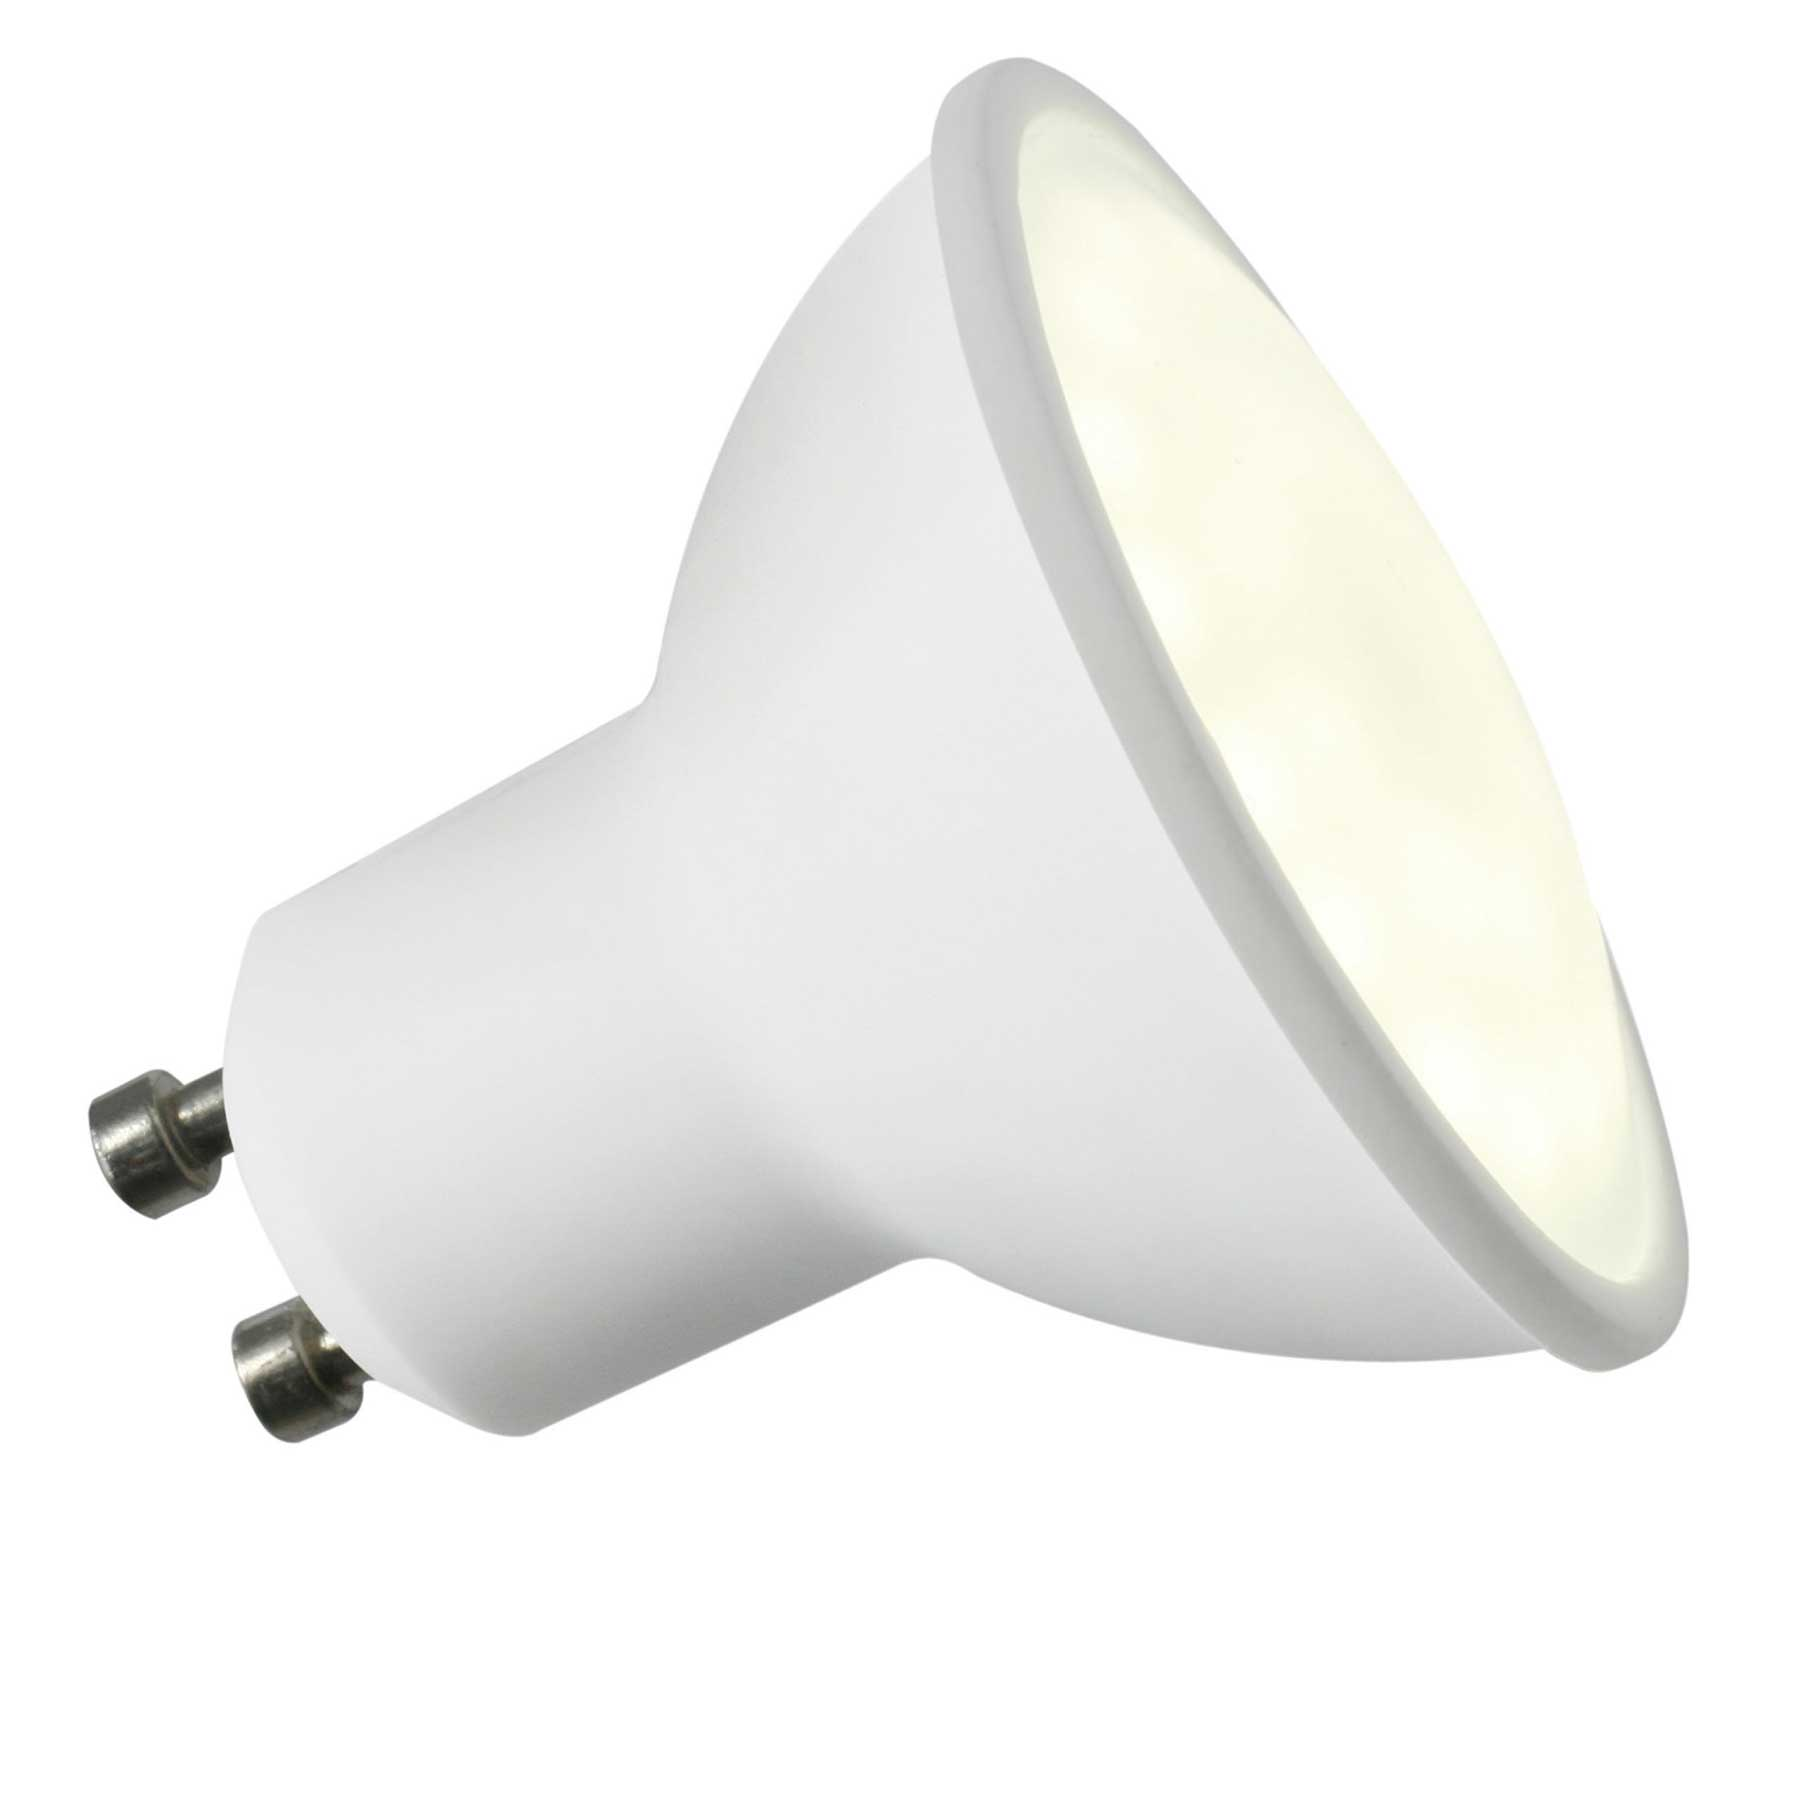 Knightsbridge GU10 LED Light Bulbs | Knightsbridge GU10 LED Light ...